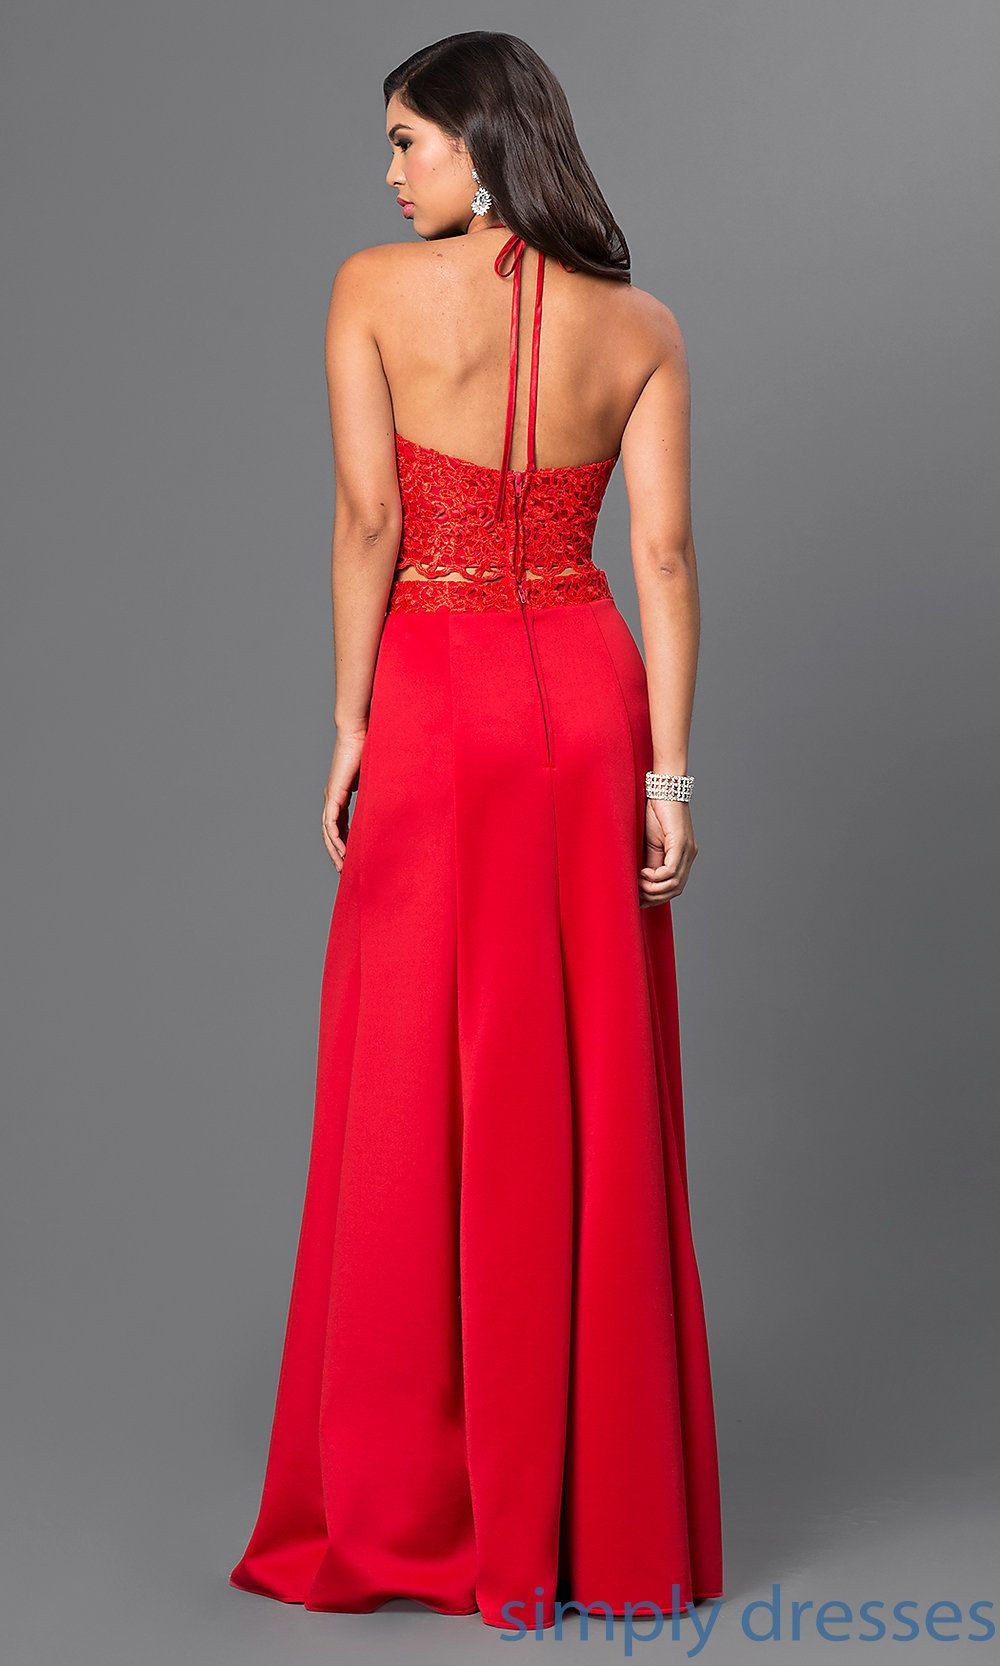 Masquerade Scarlet-Red Long Two-Piece Prom Dress | Pinterest ...